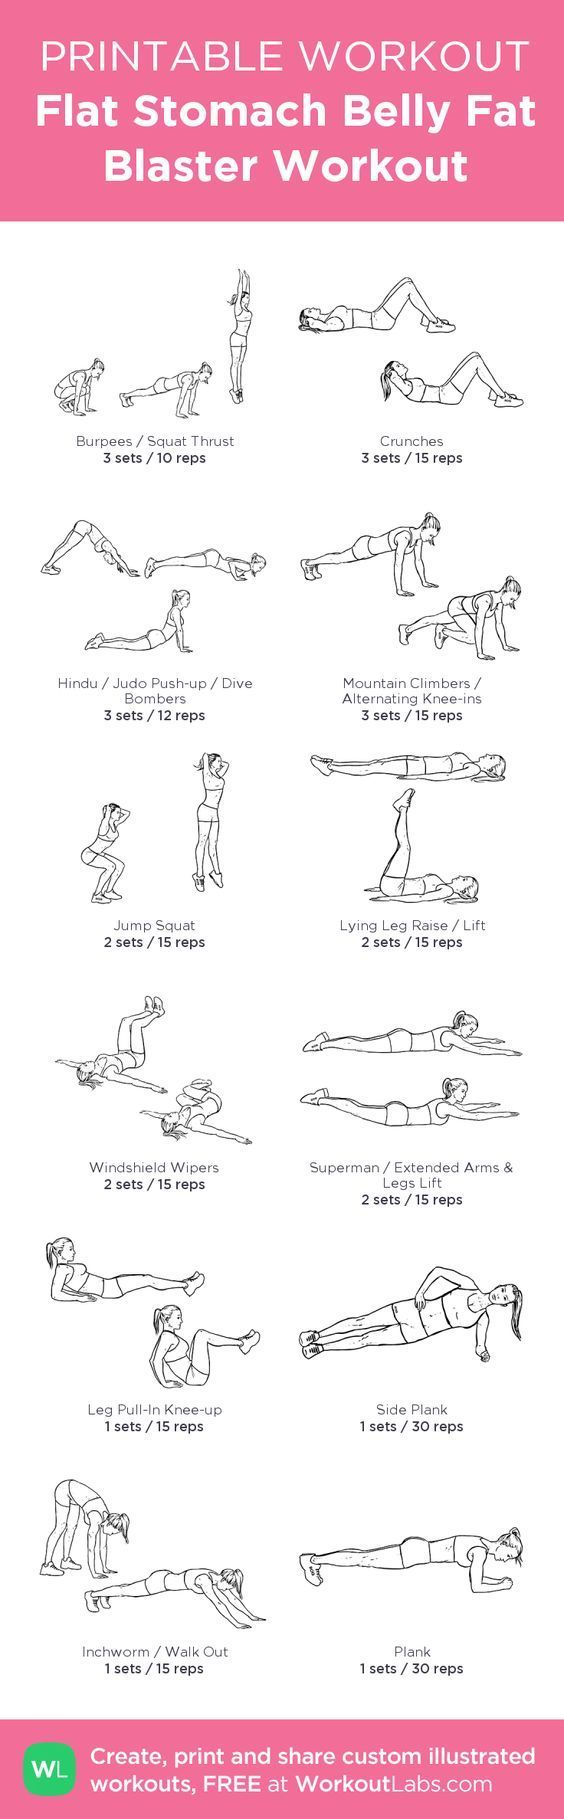 Flat Stomach Belly Fat Blaster No Equipment Workout for Women – Free beginner printable workout you can do at home without weights today! Visit http://wlabs.me/1pirVdg: